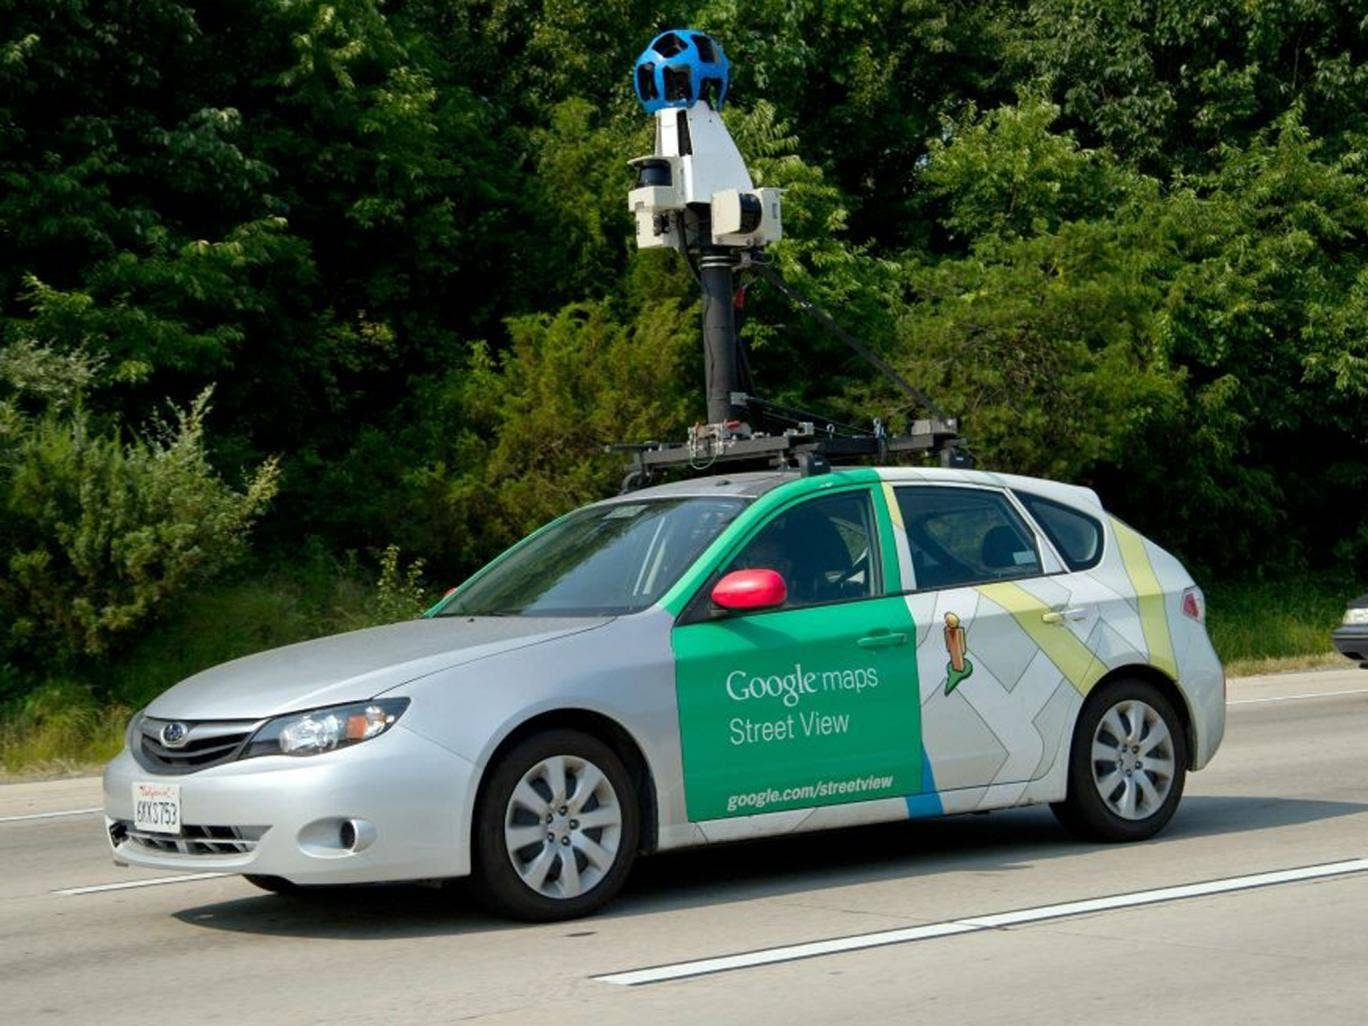 Google was ordered to pay a $7m (£4.6m) fine and agreed to destroy emails, passwords and browsing histories collected as Street View cars surveyed neighbourhoods in the US between 2008 and 2010